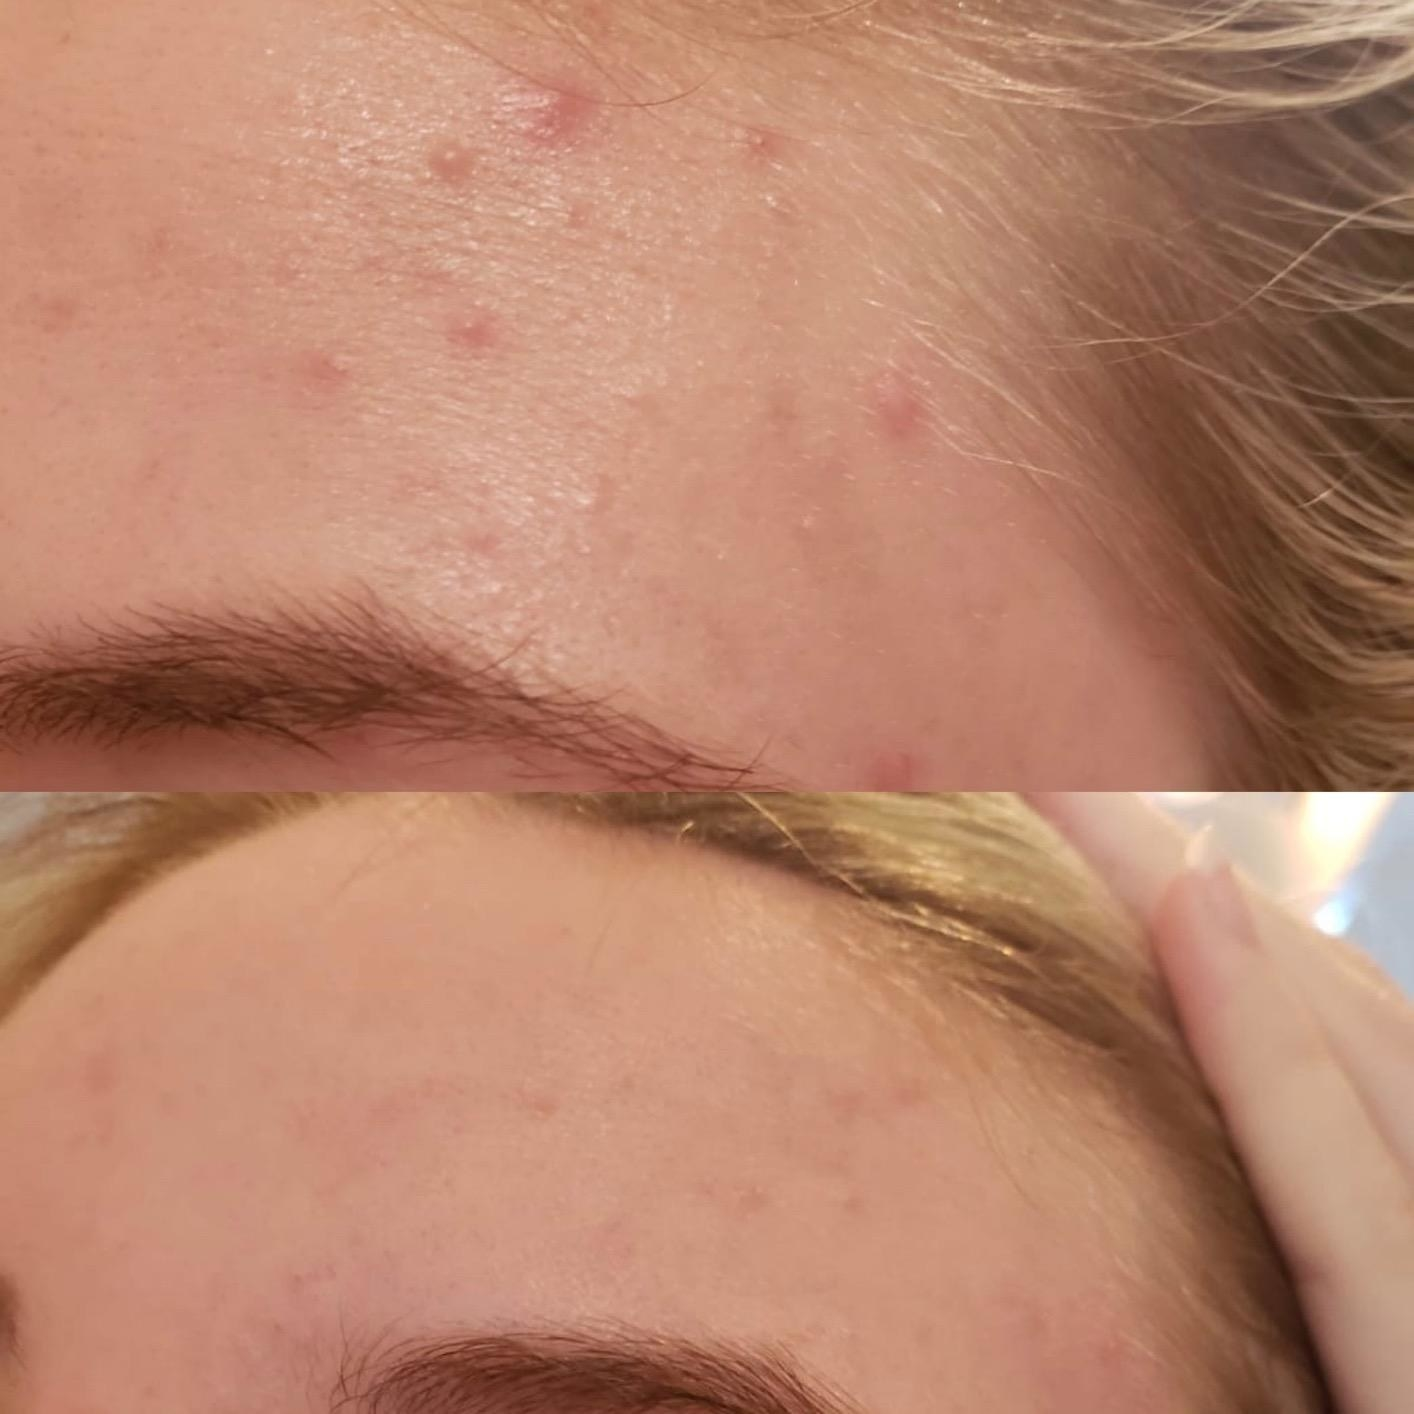 reviewer before and after photos showing their forehead acne cleared up after using the acne patches